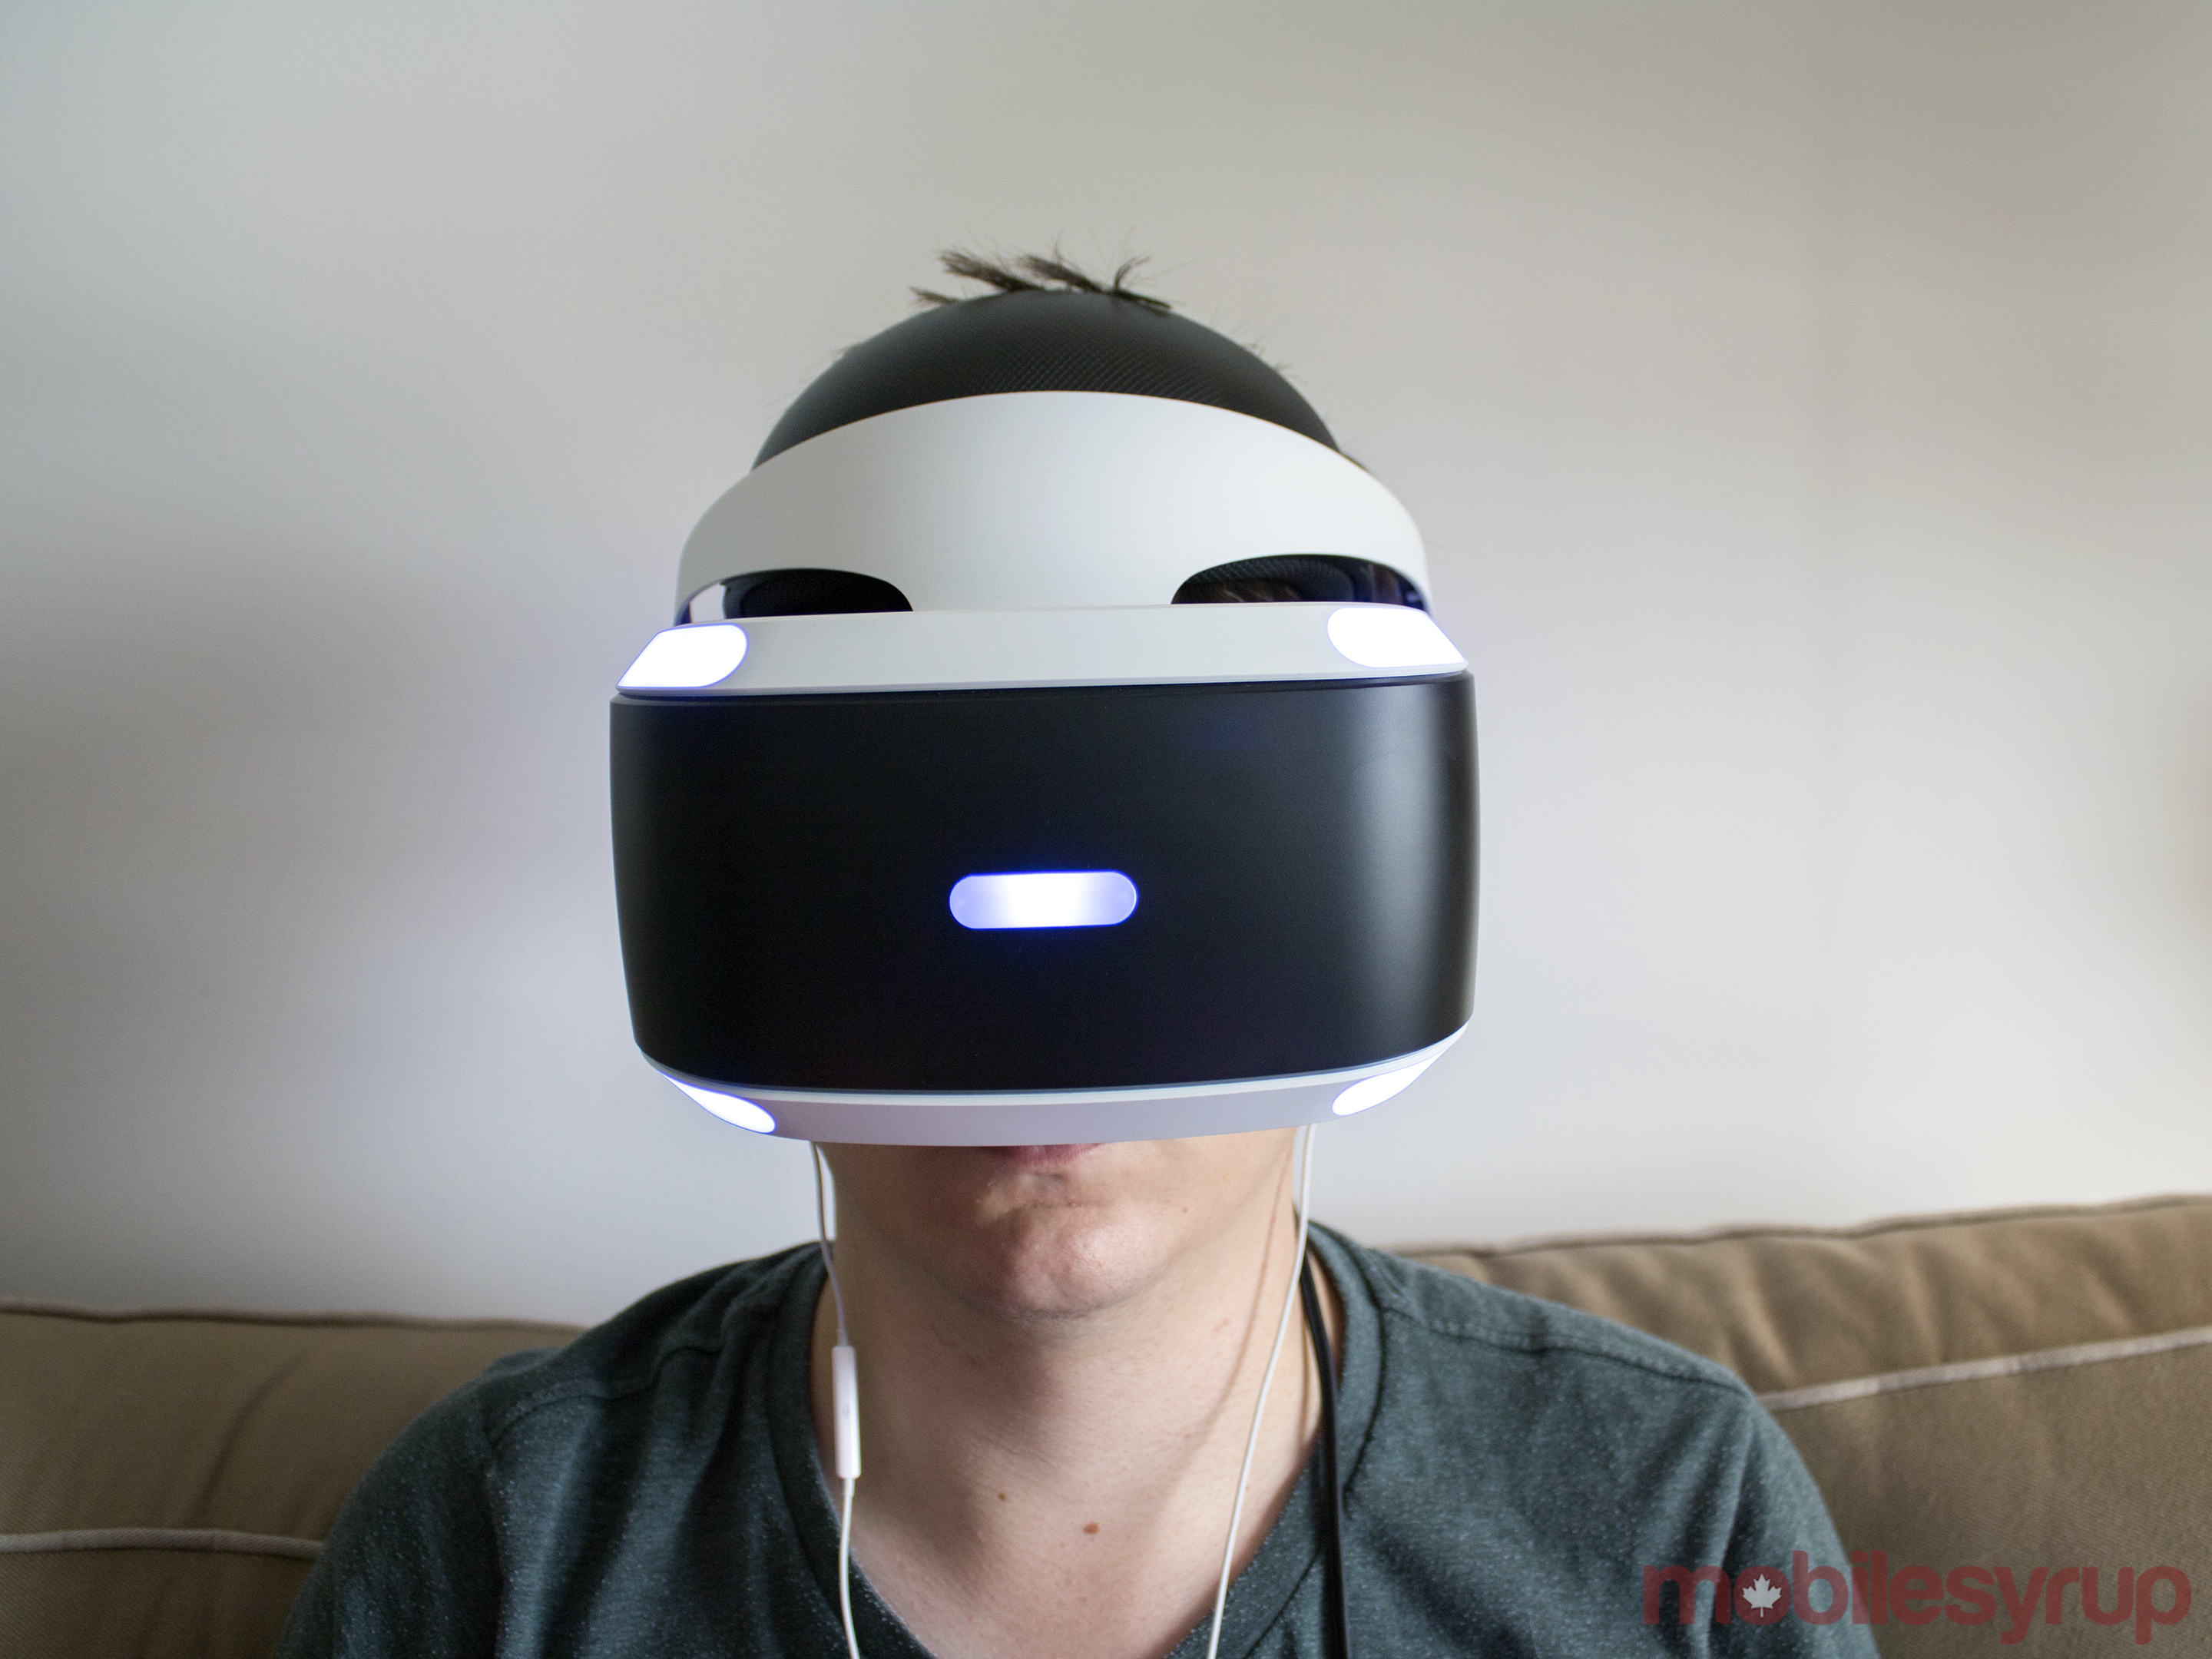 playstationvr-5